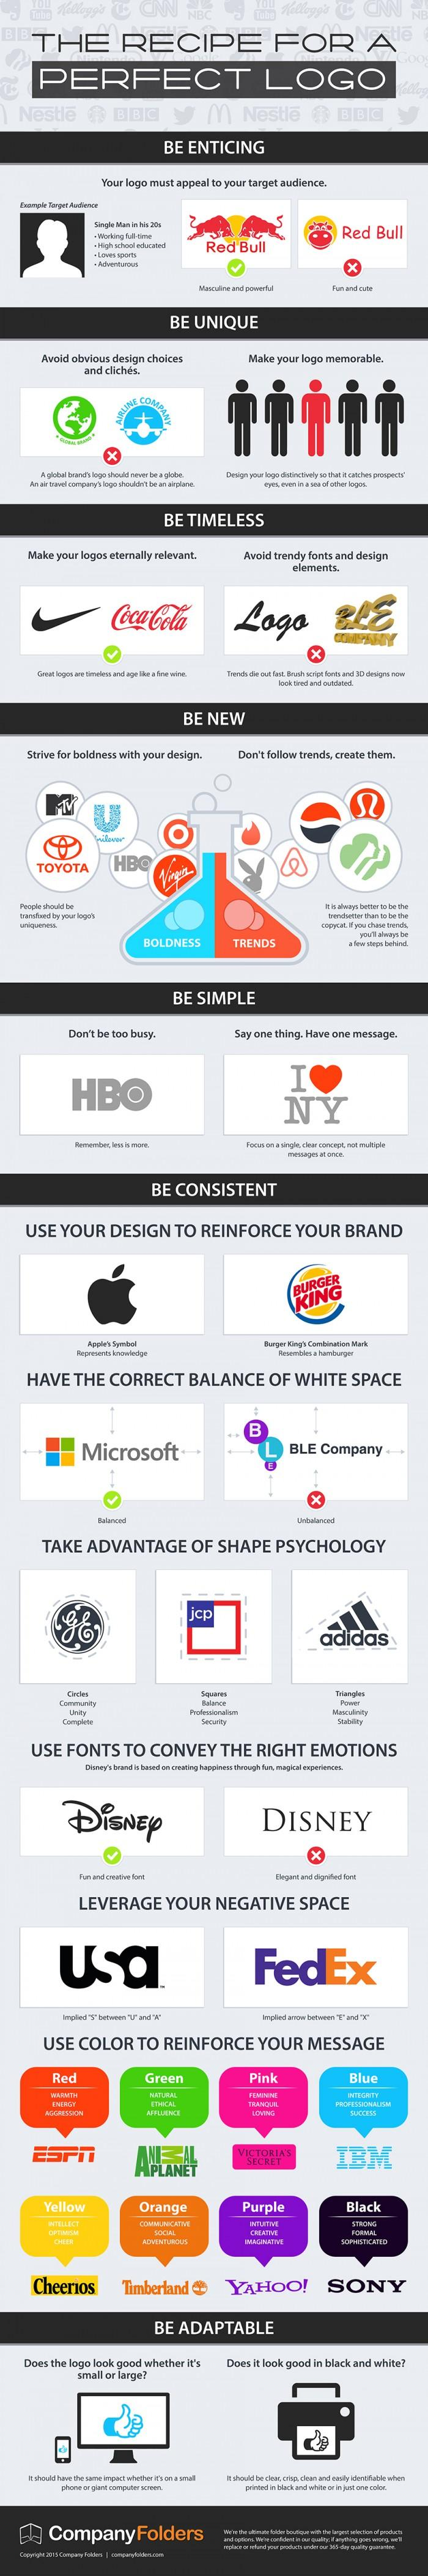 The Recipe For The Perfect Logo